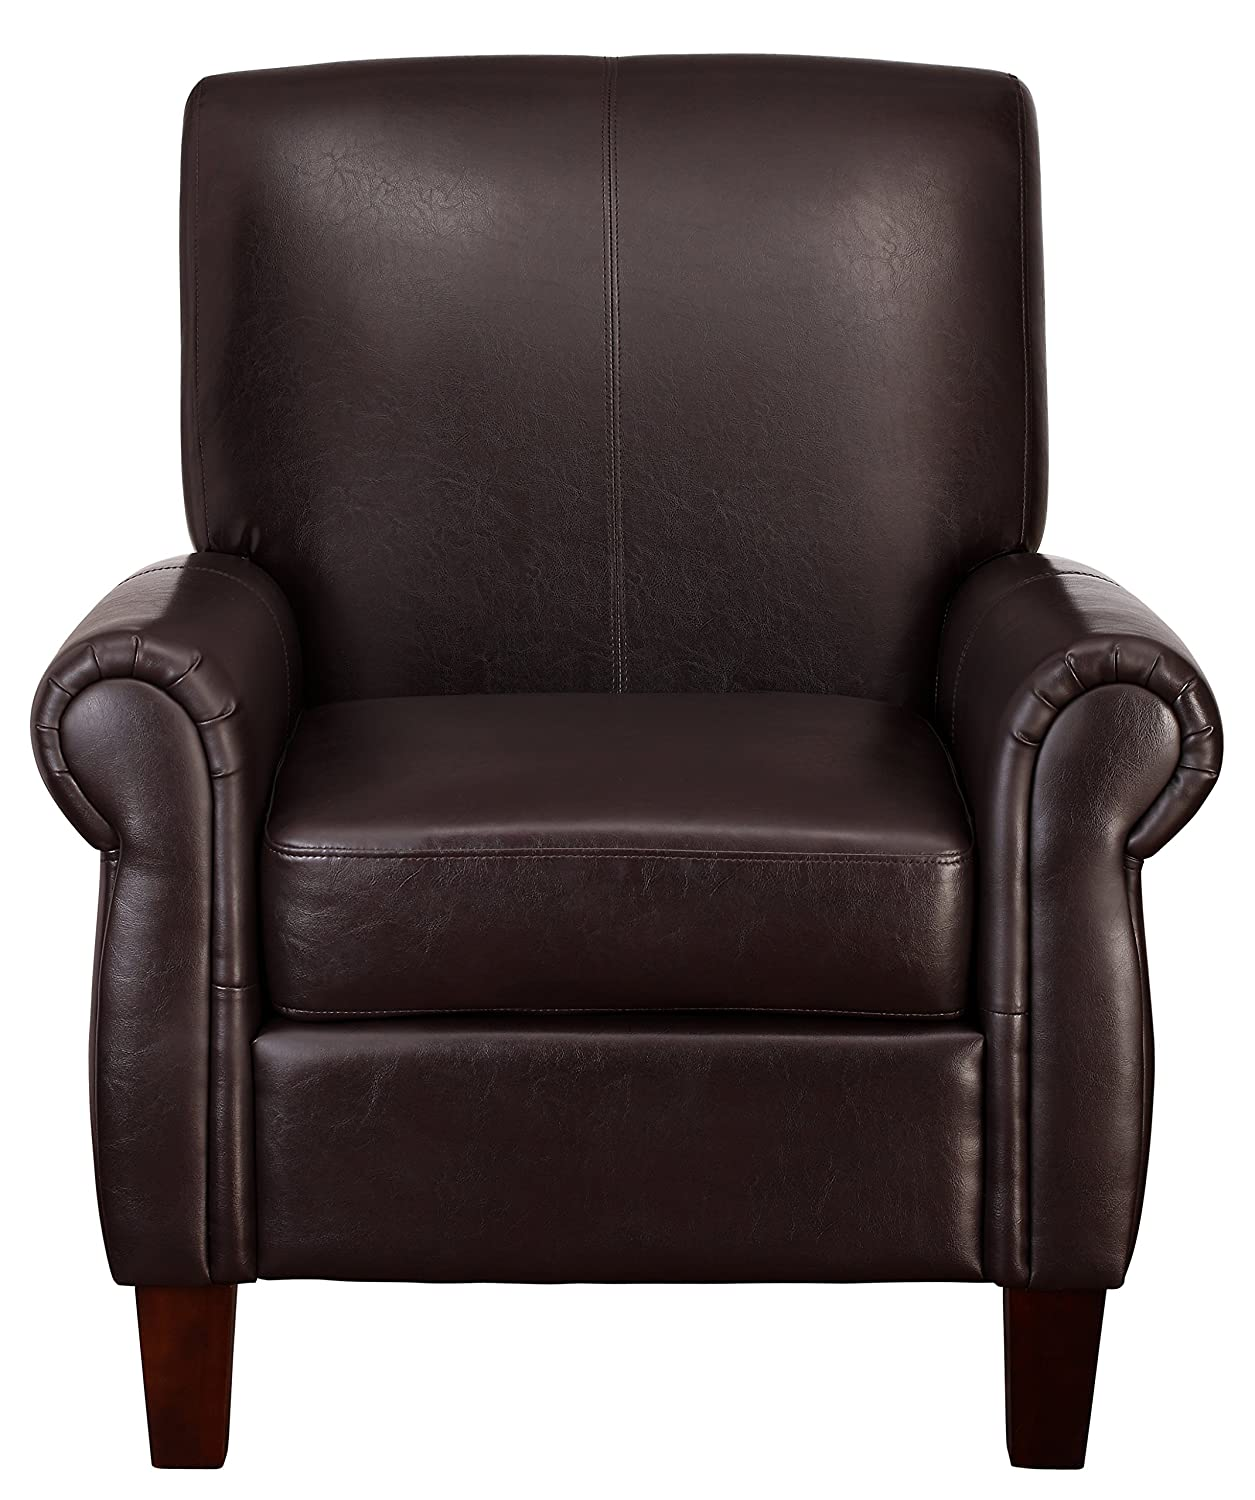 Amazon.com: Dorel Living Elegant Faux Leather Club Chair: Kitchen U0026 Dining